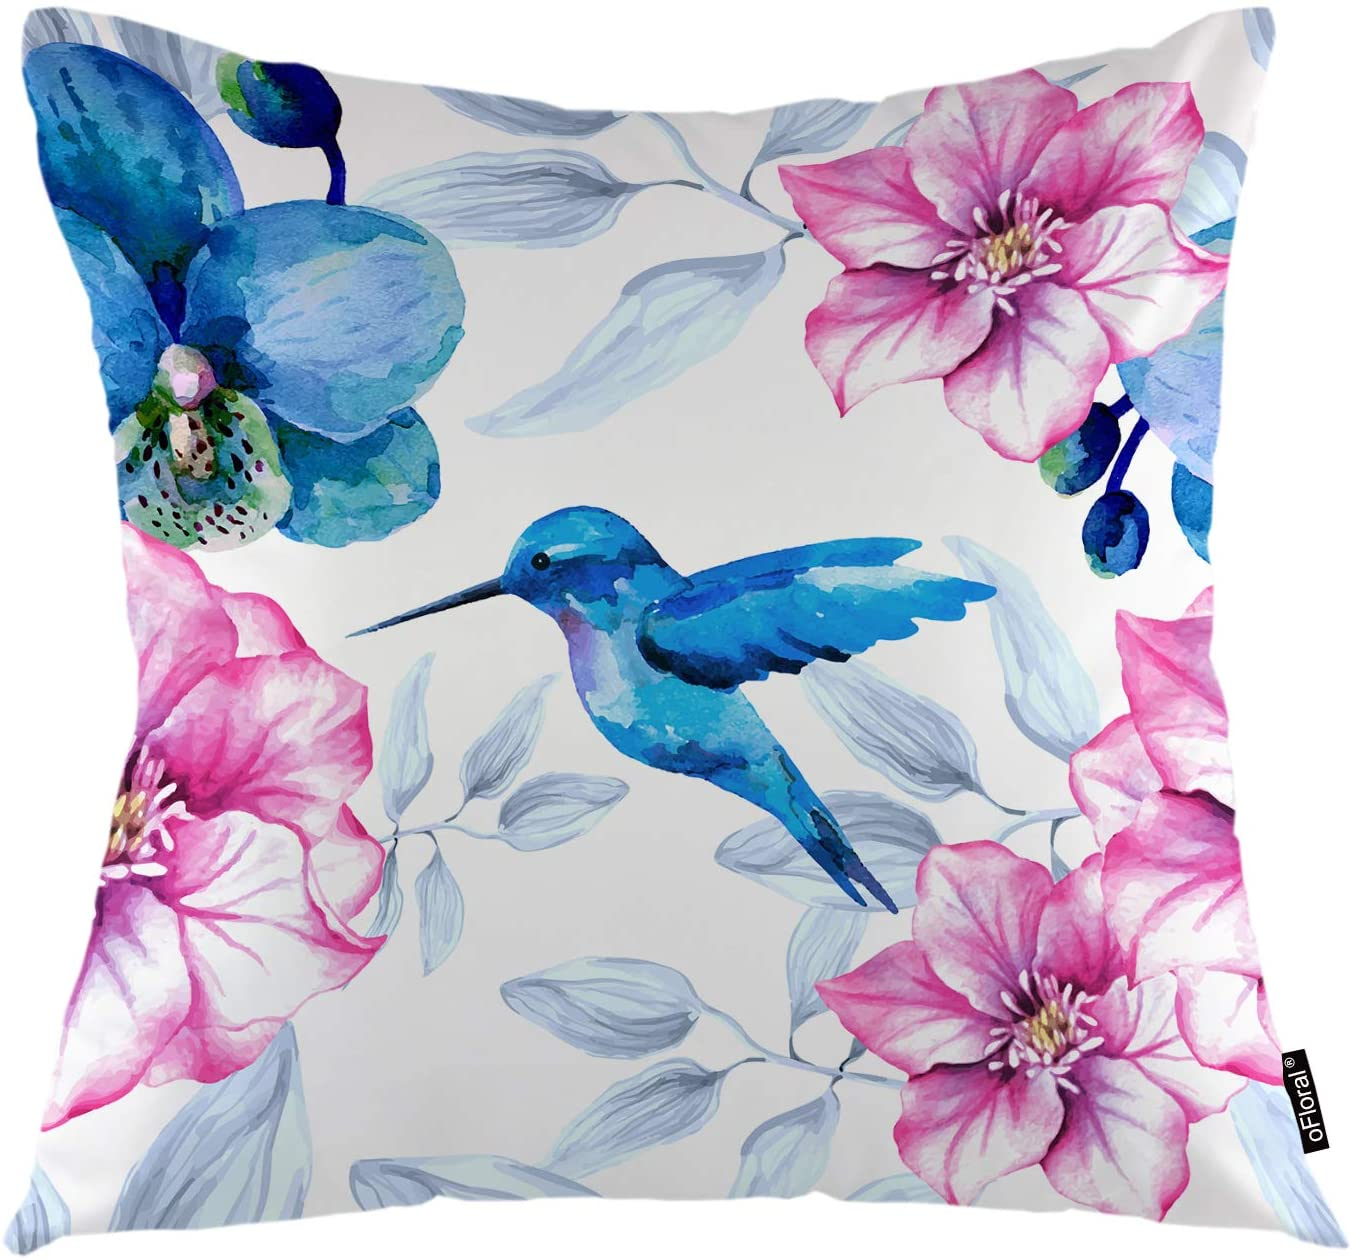 oFloral Flower Throw Pillow Cover Orchid Flowers Hummingbird Nature Rose Plant Decorative Square Pillow Case 18X18 Pillowcase Home Decor for Sofa Bedroom